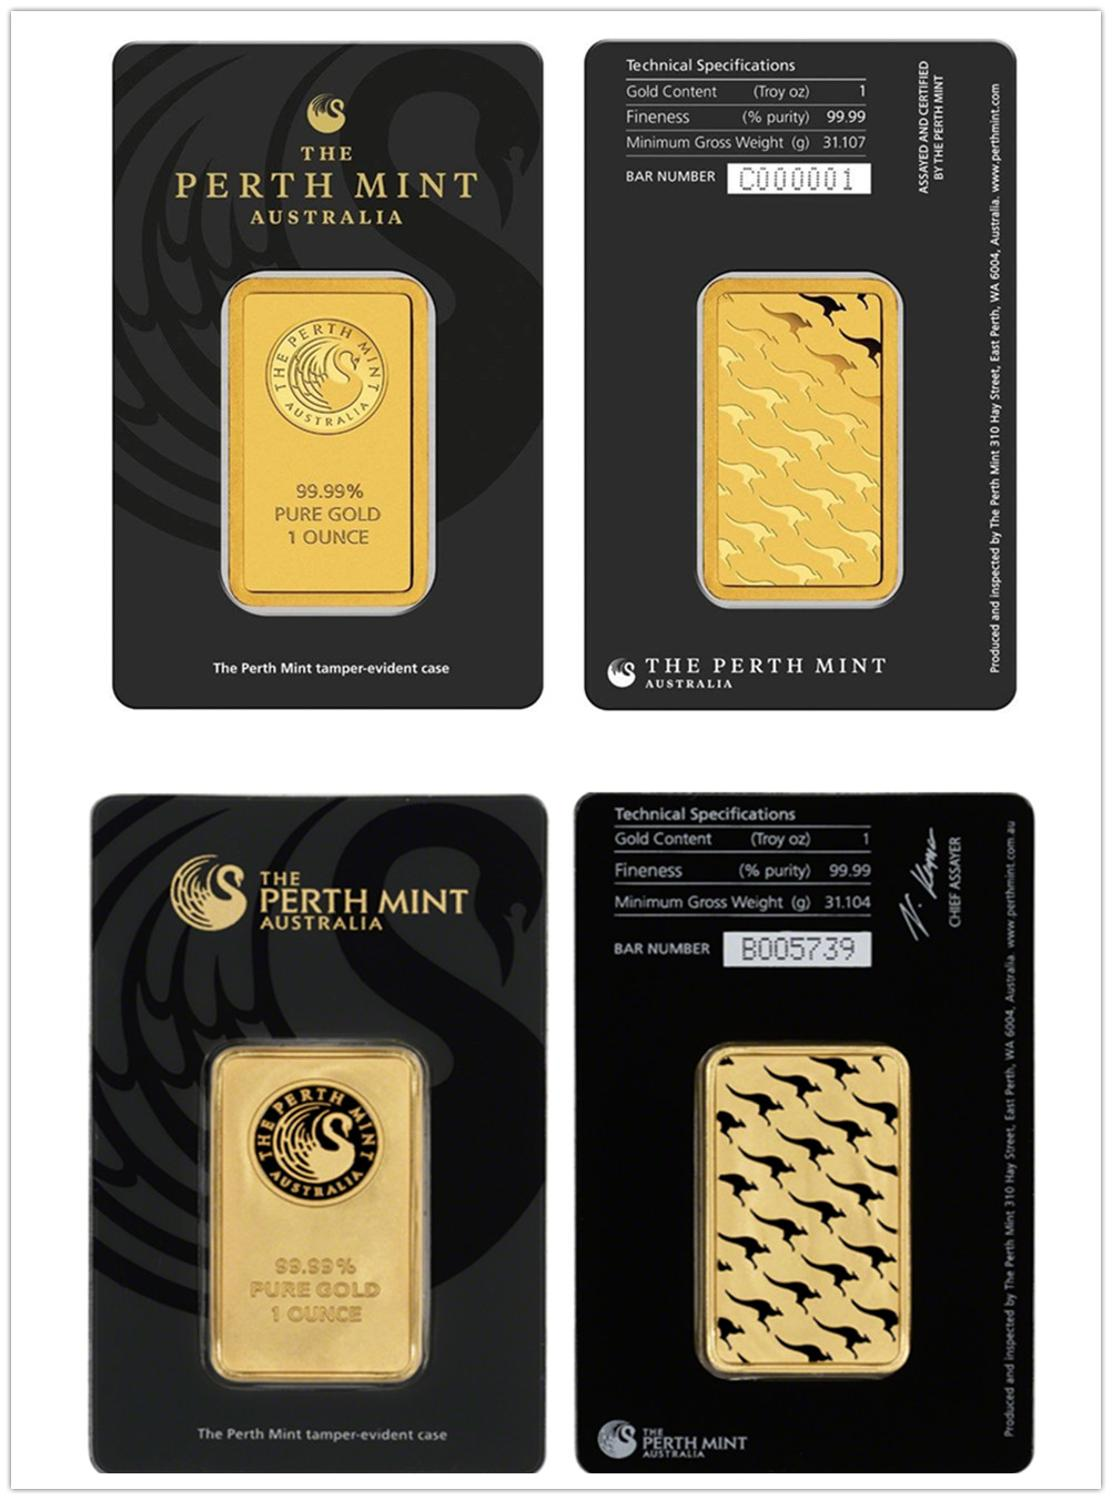 The Perth Mint 1 Oz Troy 99.99% Pure Gold Plated Replica Souvenir Australia High Relief Token Gold Bar free shipping